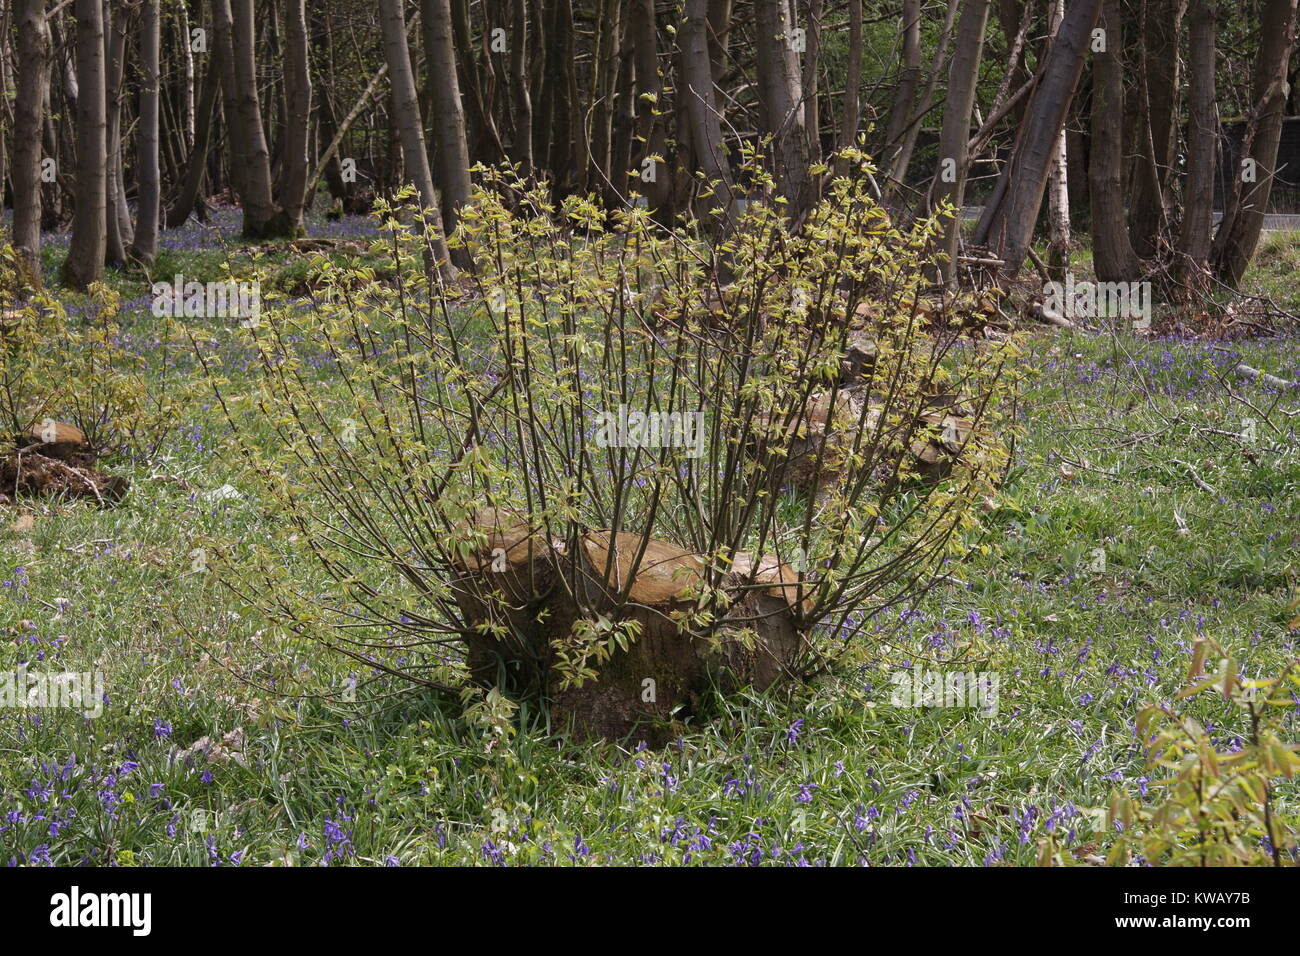 Castanea sativa, the Sweet Chestnut 1sy year regeneration from a coppiced tree stool in ancient kent woodland. Conservation Stock Photo